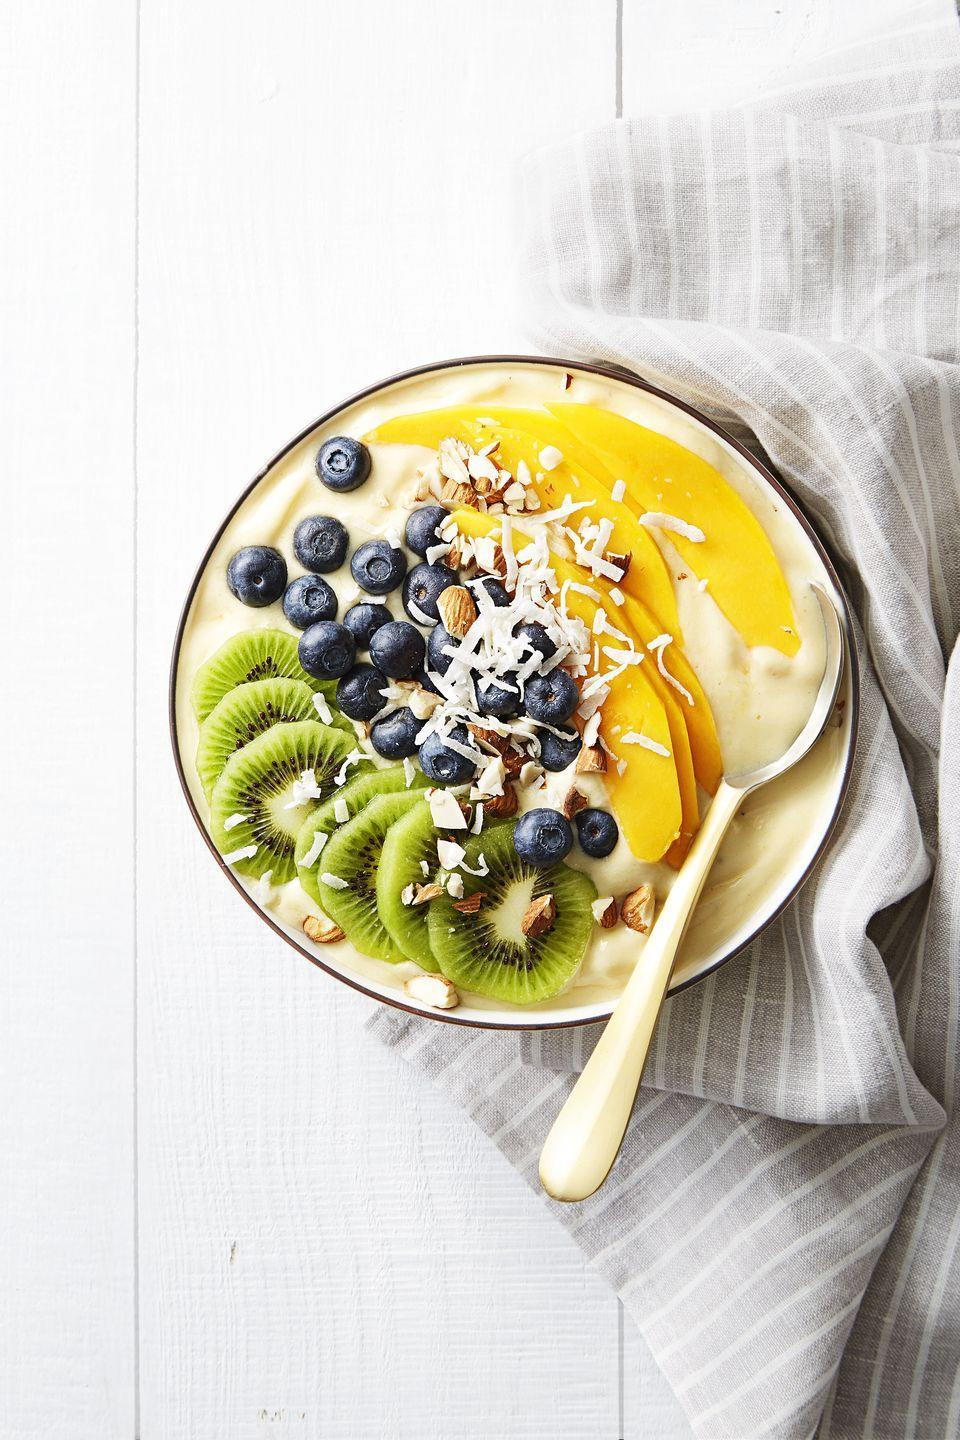 "<p>This bowl is begging to be Instagrammed and takes all of 10 seconds in the <a href=""https://www.goodhousekeeping.com/appliances/blender-reviews/g4864/best-blender-reviews/"" rel=""nofollow noopener"" target=""_blank"" data-ylk=""slk:blender"" class=""link rapid-noclick-resp"">blender</a>.</p><p><a href=""https://www.goodhousekeeping.com/food-recipes/a38877/tropical-smoothie-bowl-recipe/"" rel=""nofollow noopener"" target=""_blank"" data-ylk=""slk:Get the recipe for Tropical Smoothie Bowl »"" class=""link rapid-noclick-resp""><em>Get the recipe for Tropical Smoothie Bowl » </em></a><br></p>"